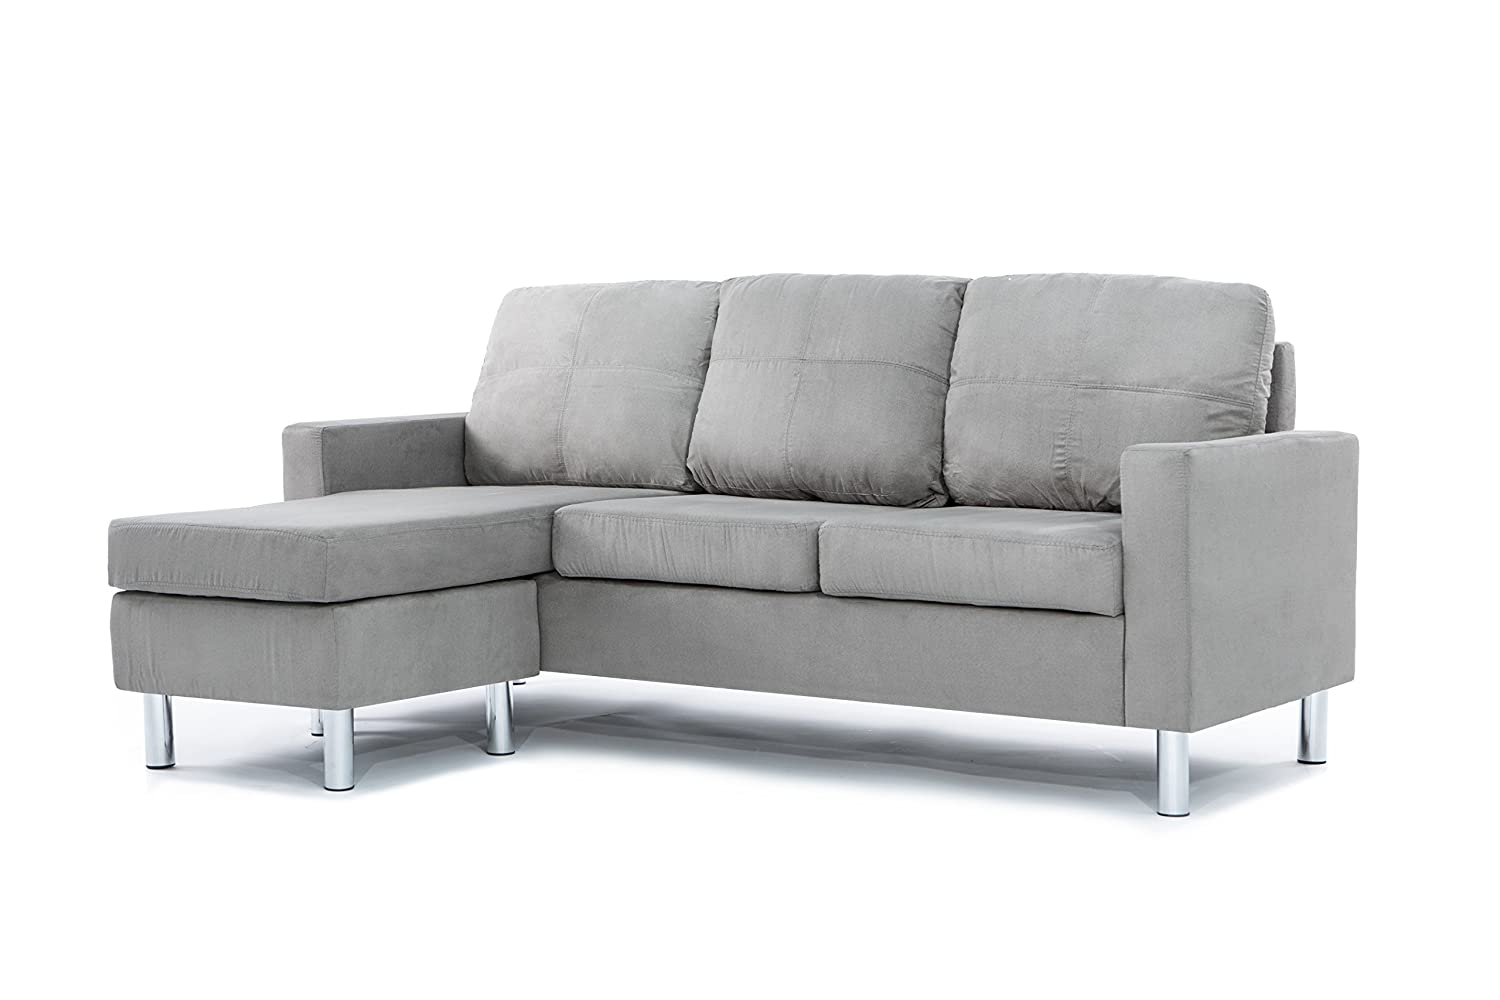 Cheap Sofas For Sale Under 200